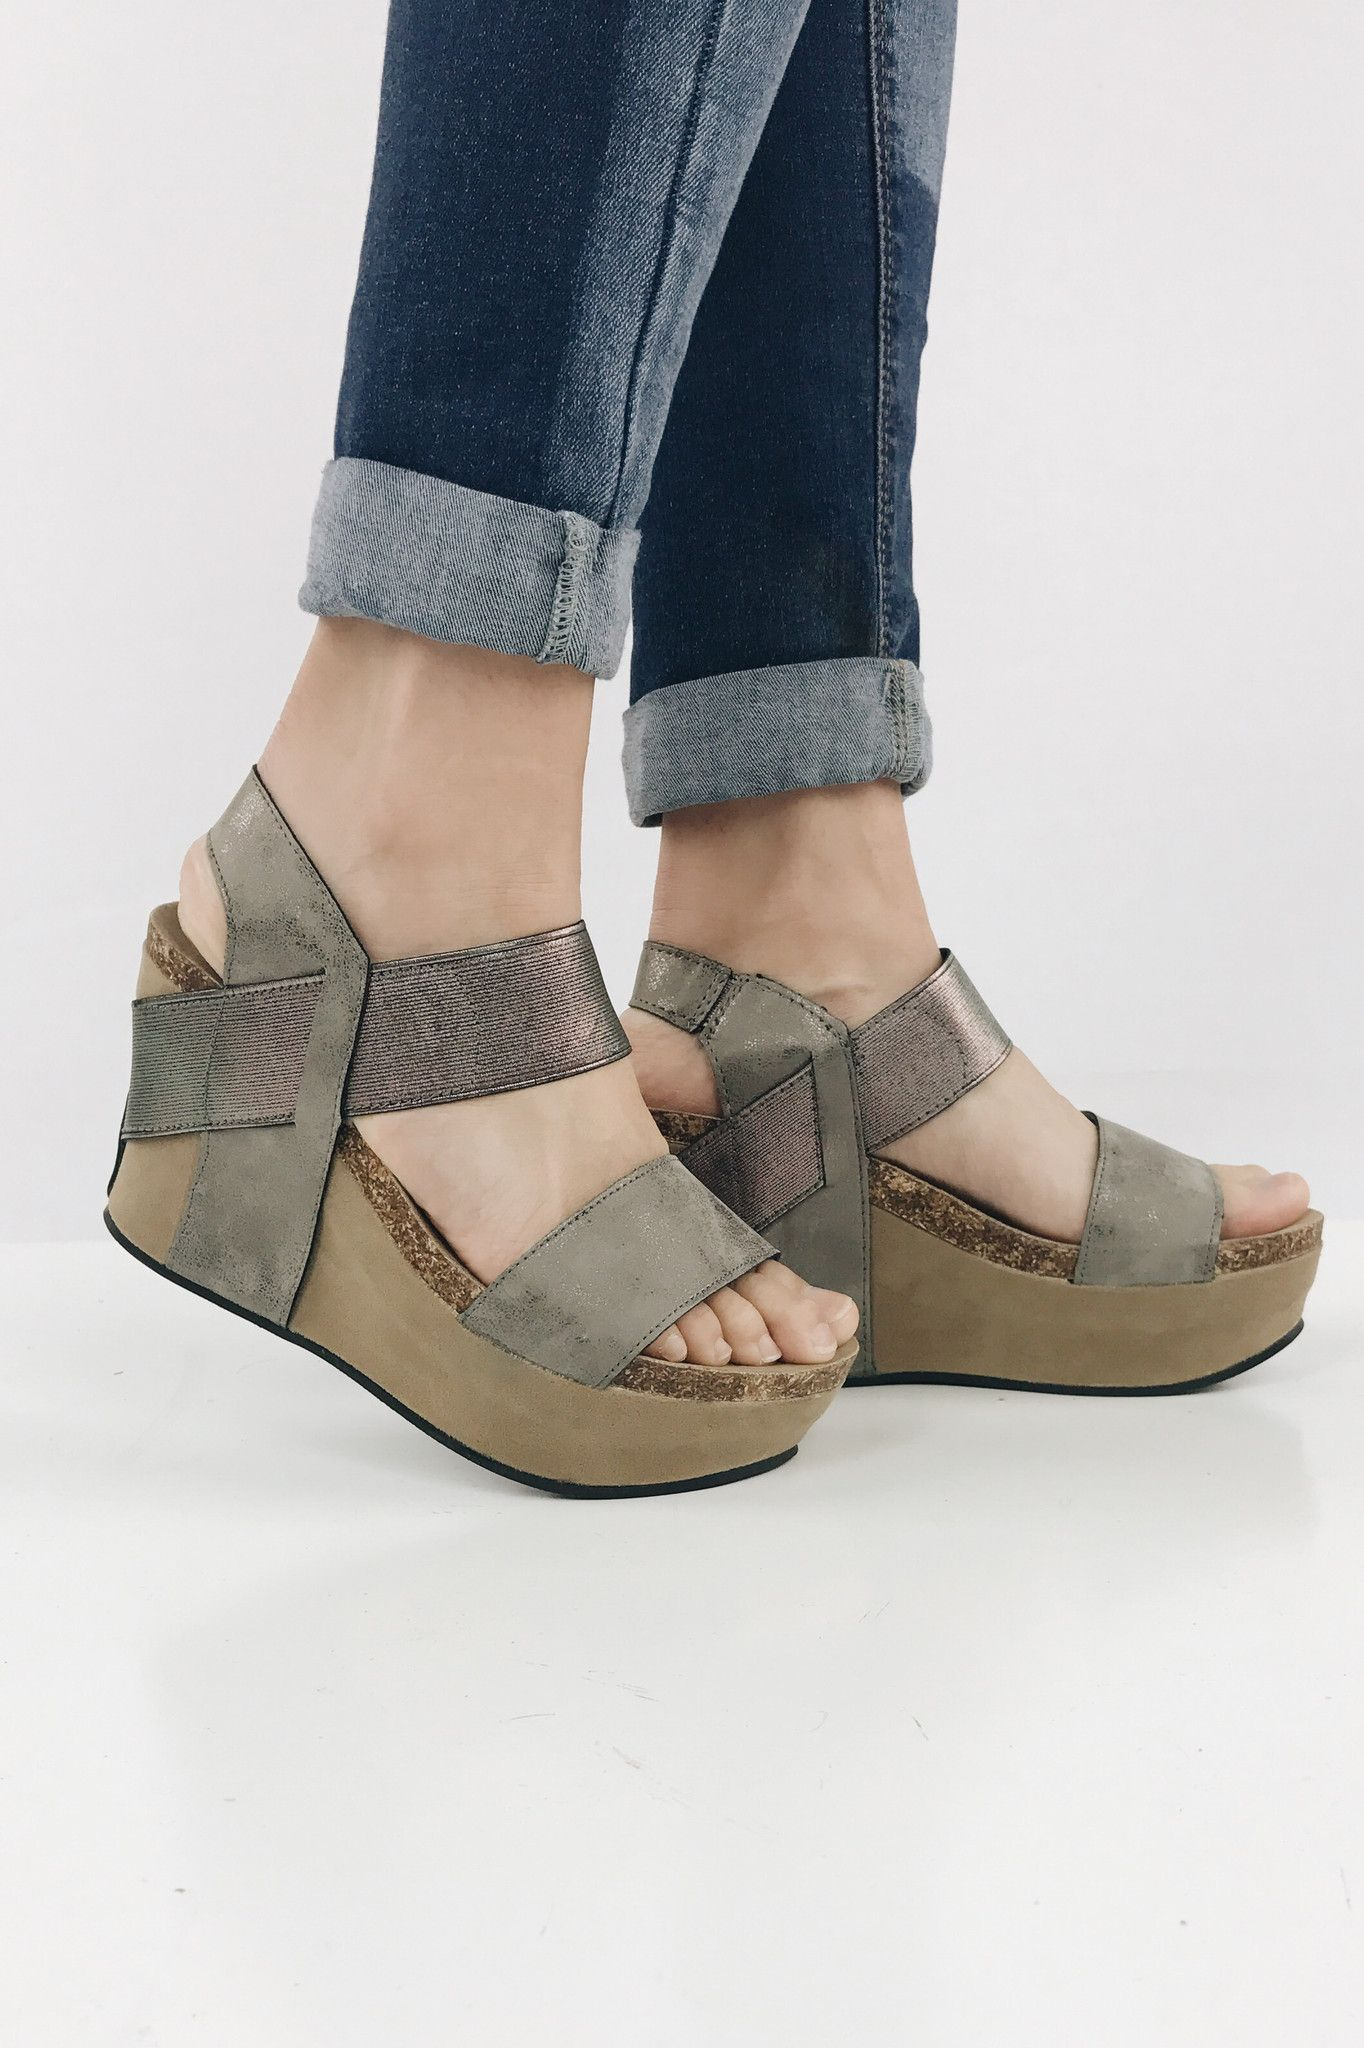 80fa8a0e9d34 Your favorite wedge pewter fashion pinterest pewter wedges jpg 1364x2048 Pewter  wedges